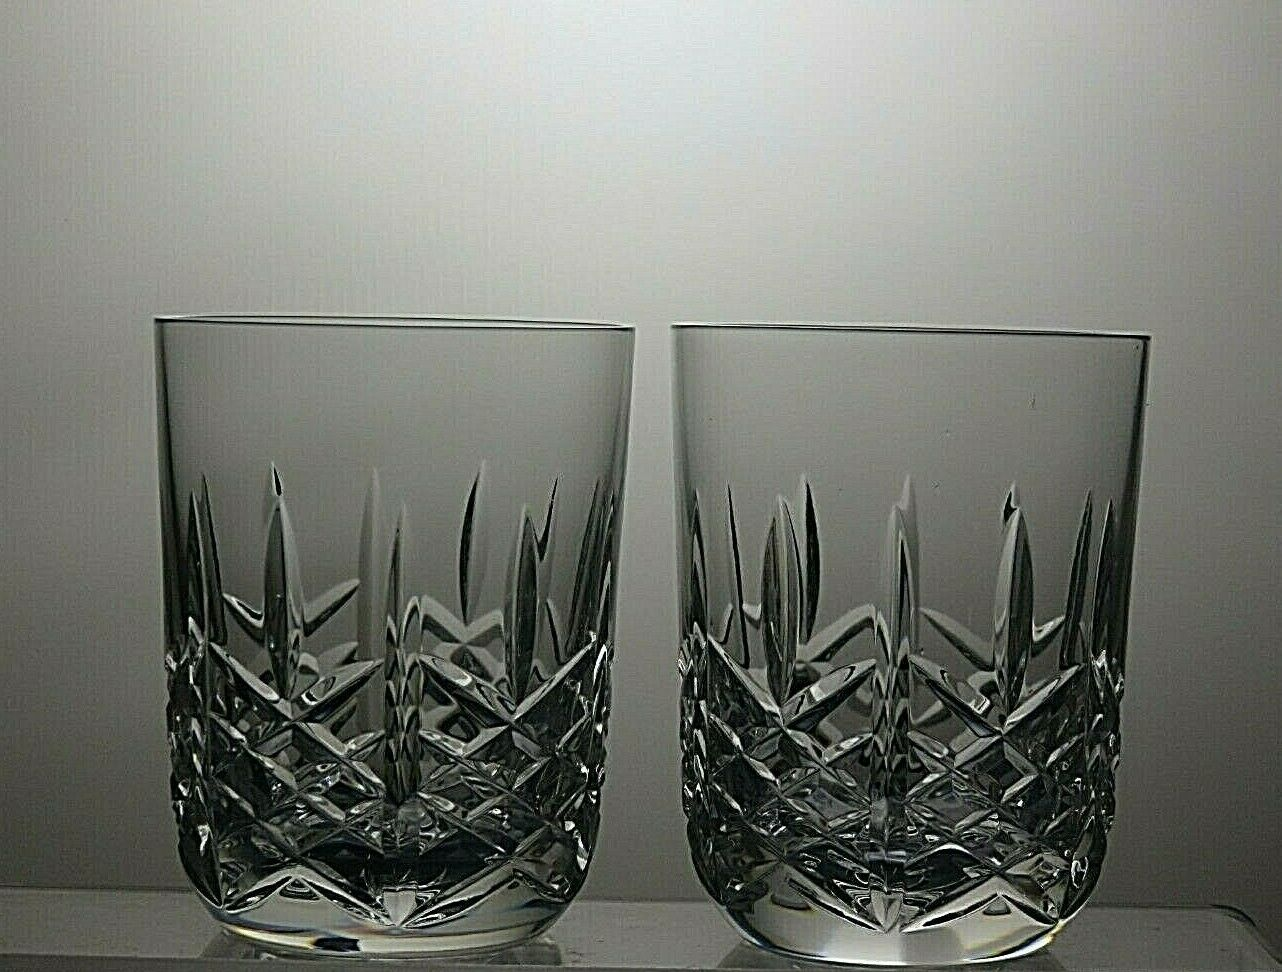 2 WATERFORD CRYSTAL MARQUIS  EARLS COURT  CUT WHISKY 9 OZ TUMBLERS - 3 3 4 tall